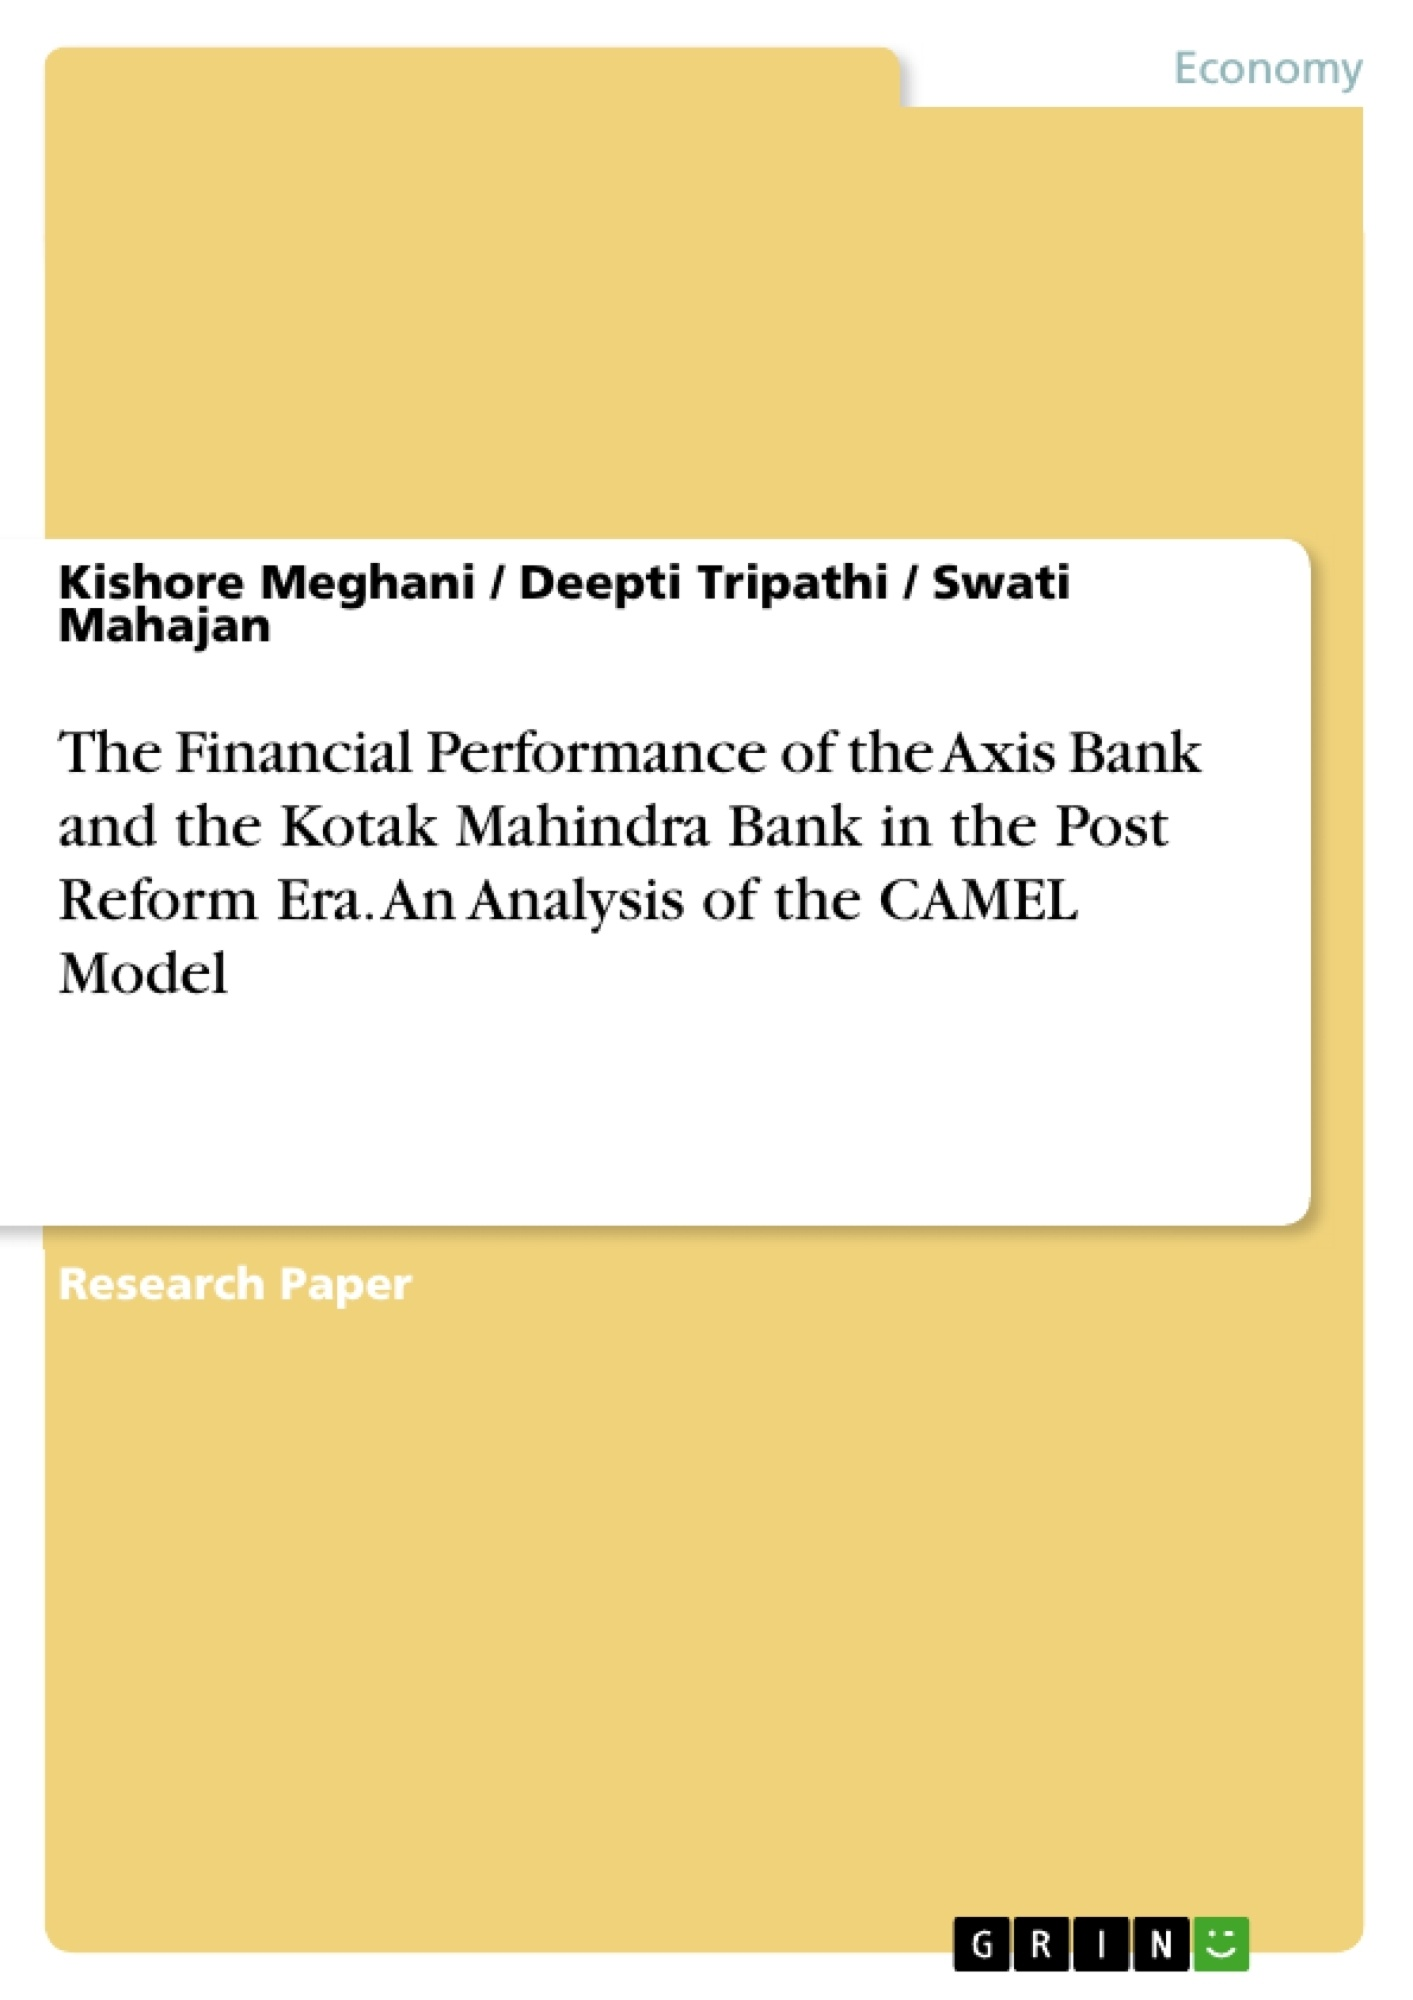 Title: The Financial Performance of the Axis Bank and the Kotak Mahindra Bank in the Post Reform Era. An Analysis of the CAMEL Model